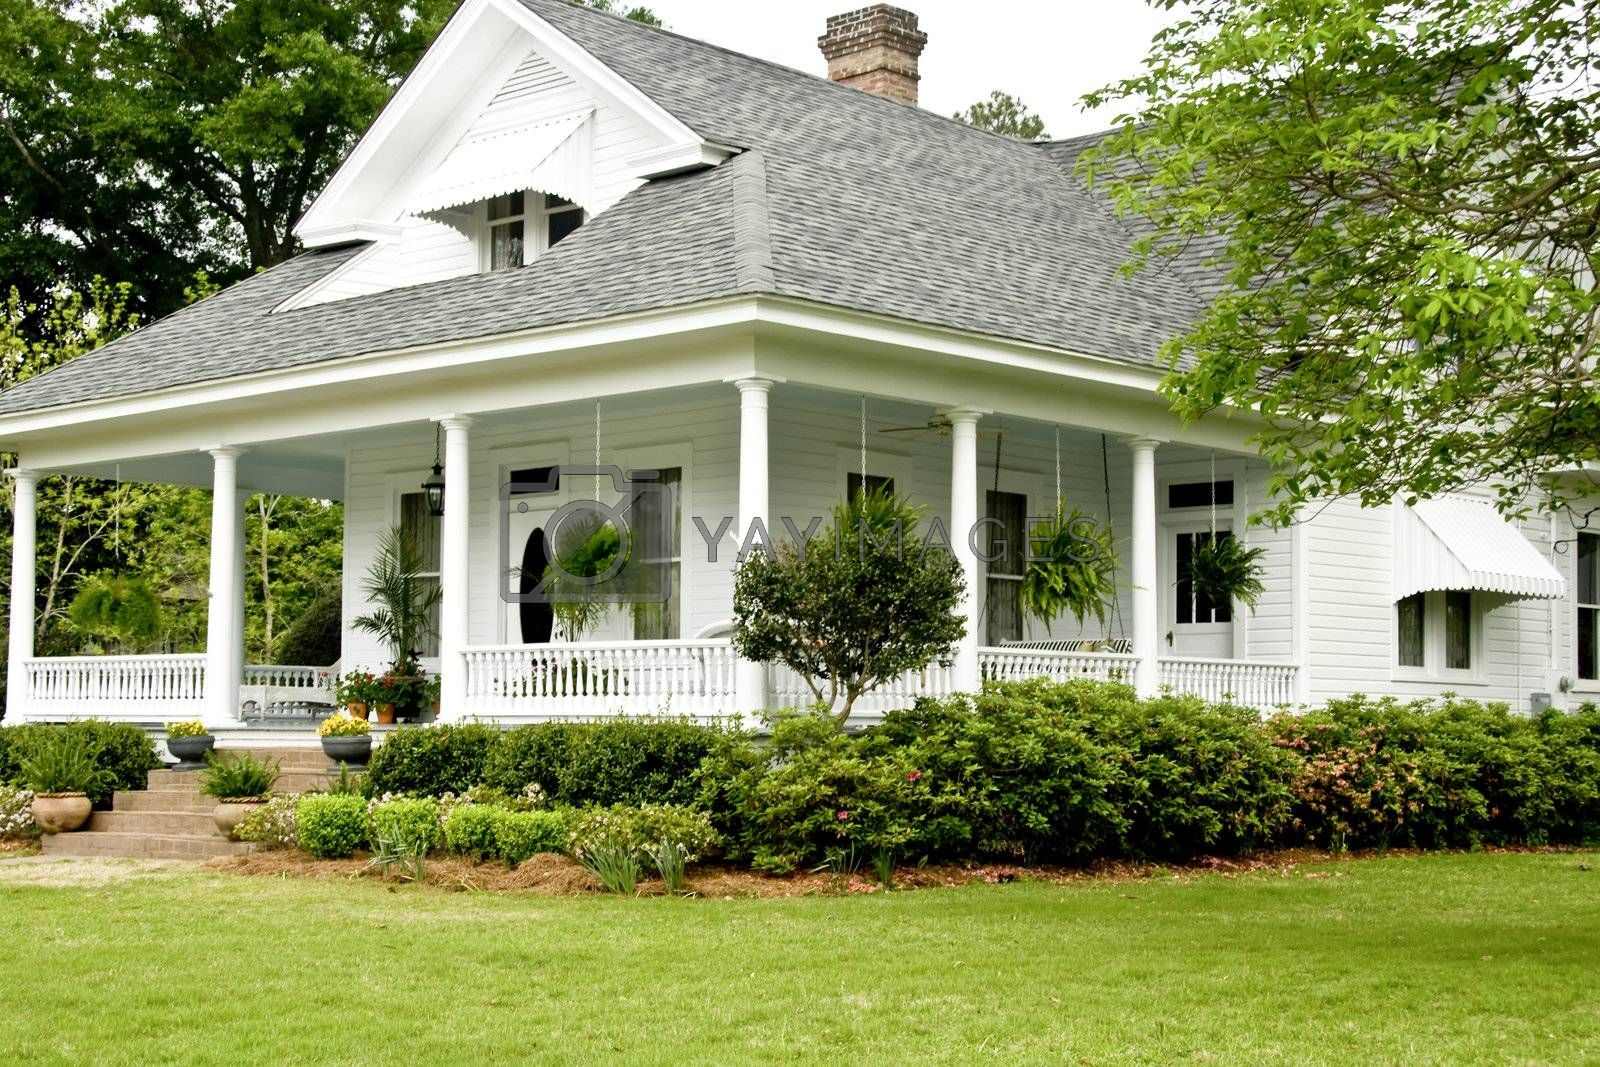 Historic White home with wrap around porch.